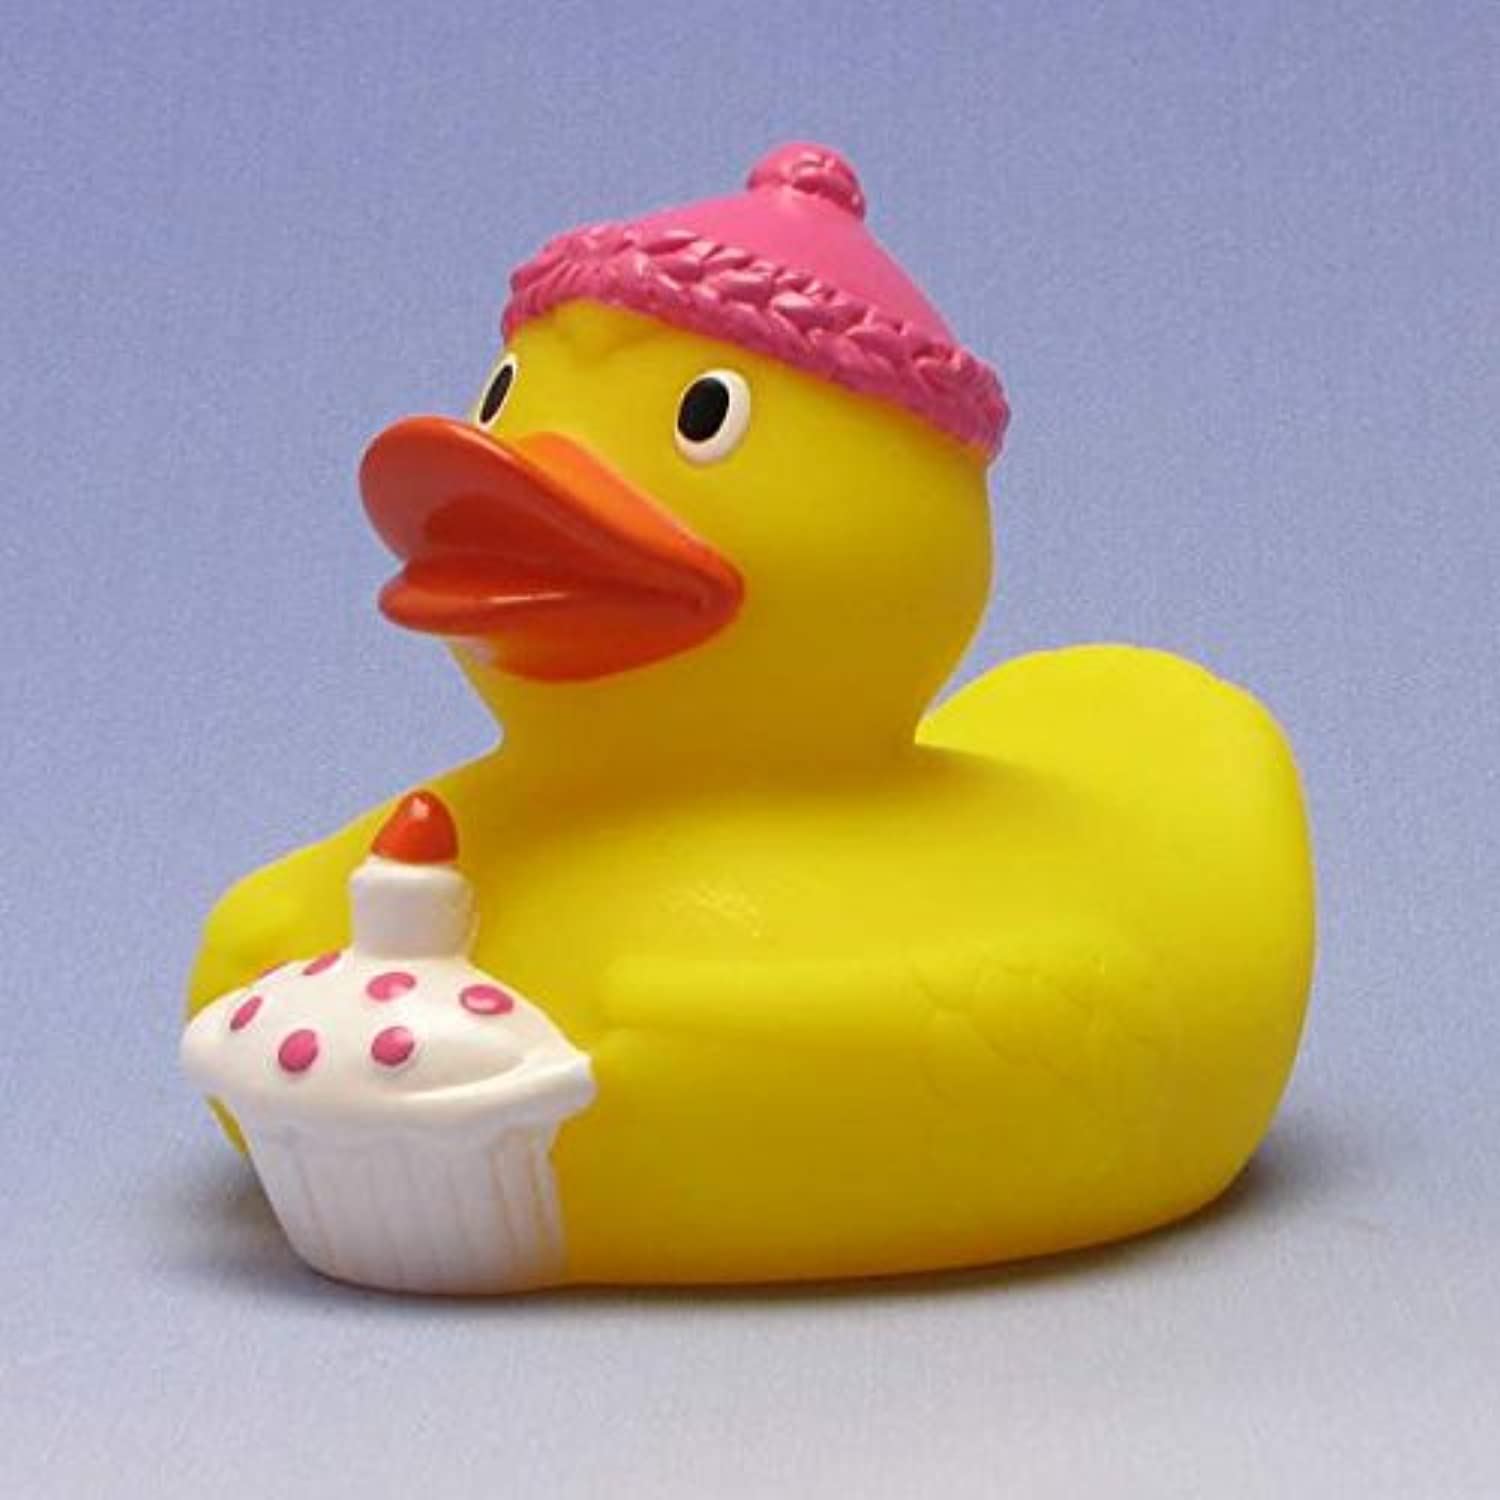 Happy Birthday Rubber Duck King pinkゴム製のアヒル …